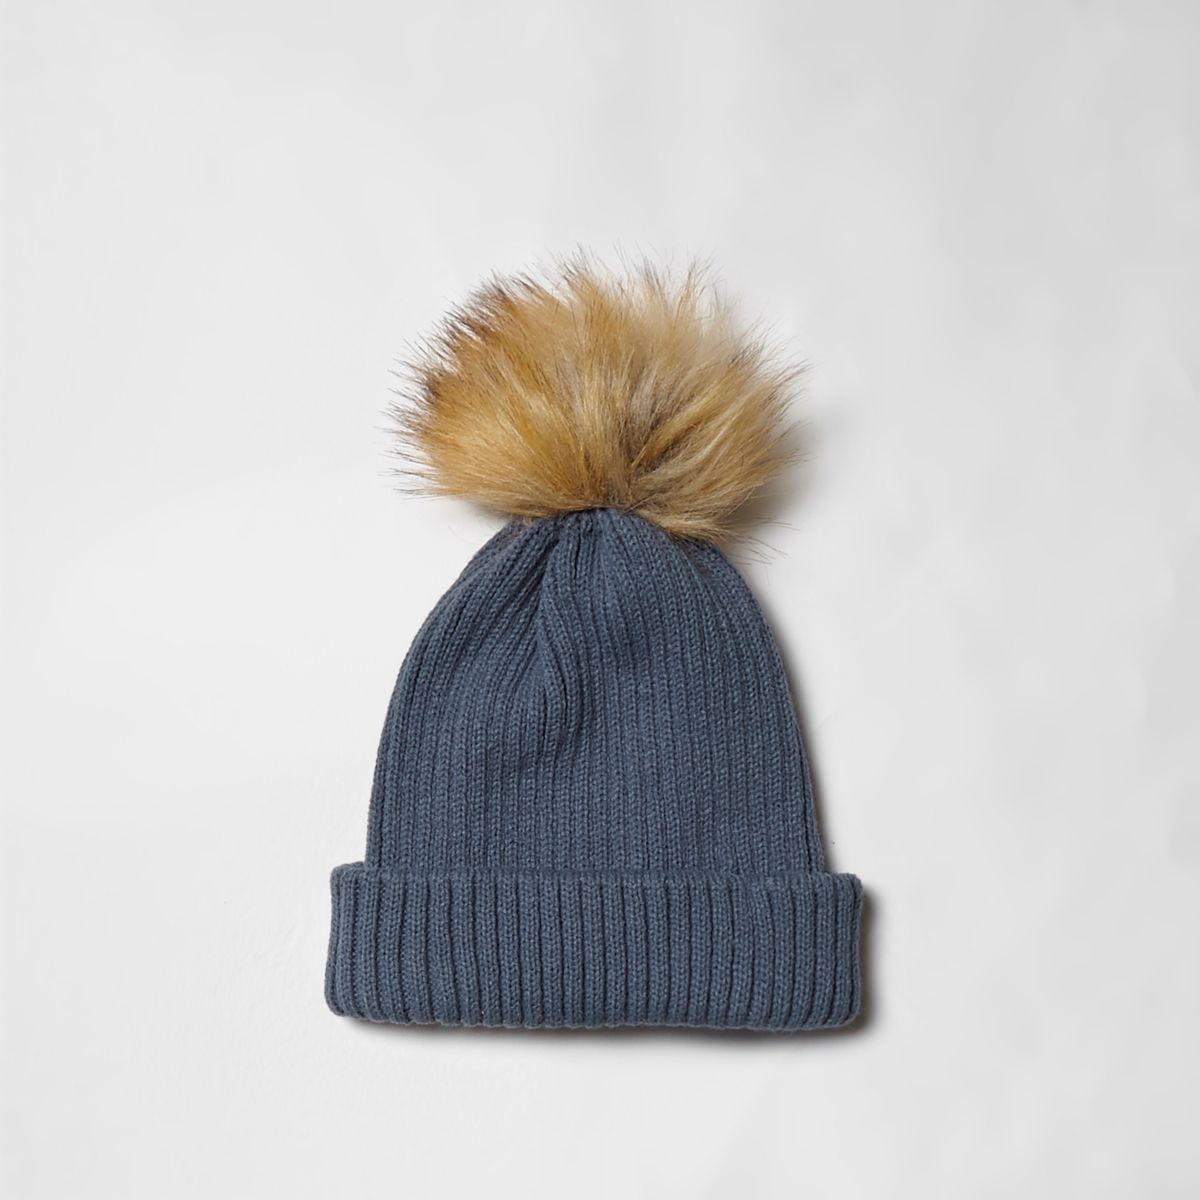 Blue rib knit pom pom bobble beanie hat